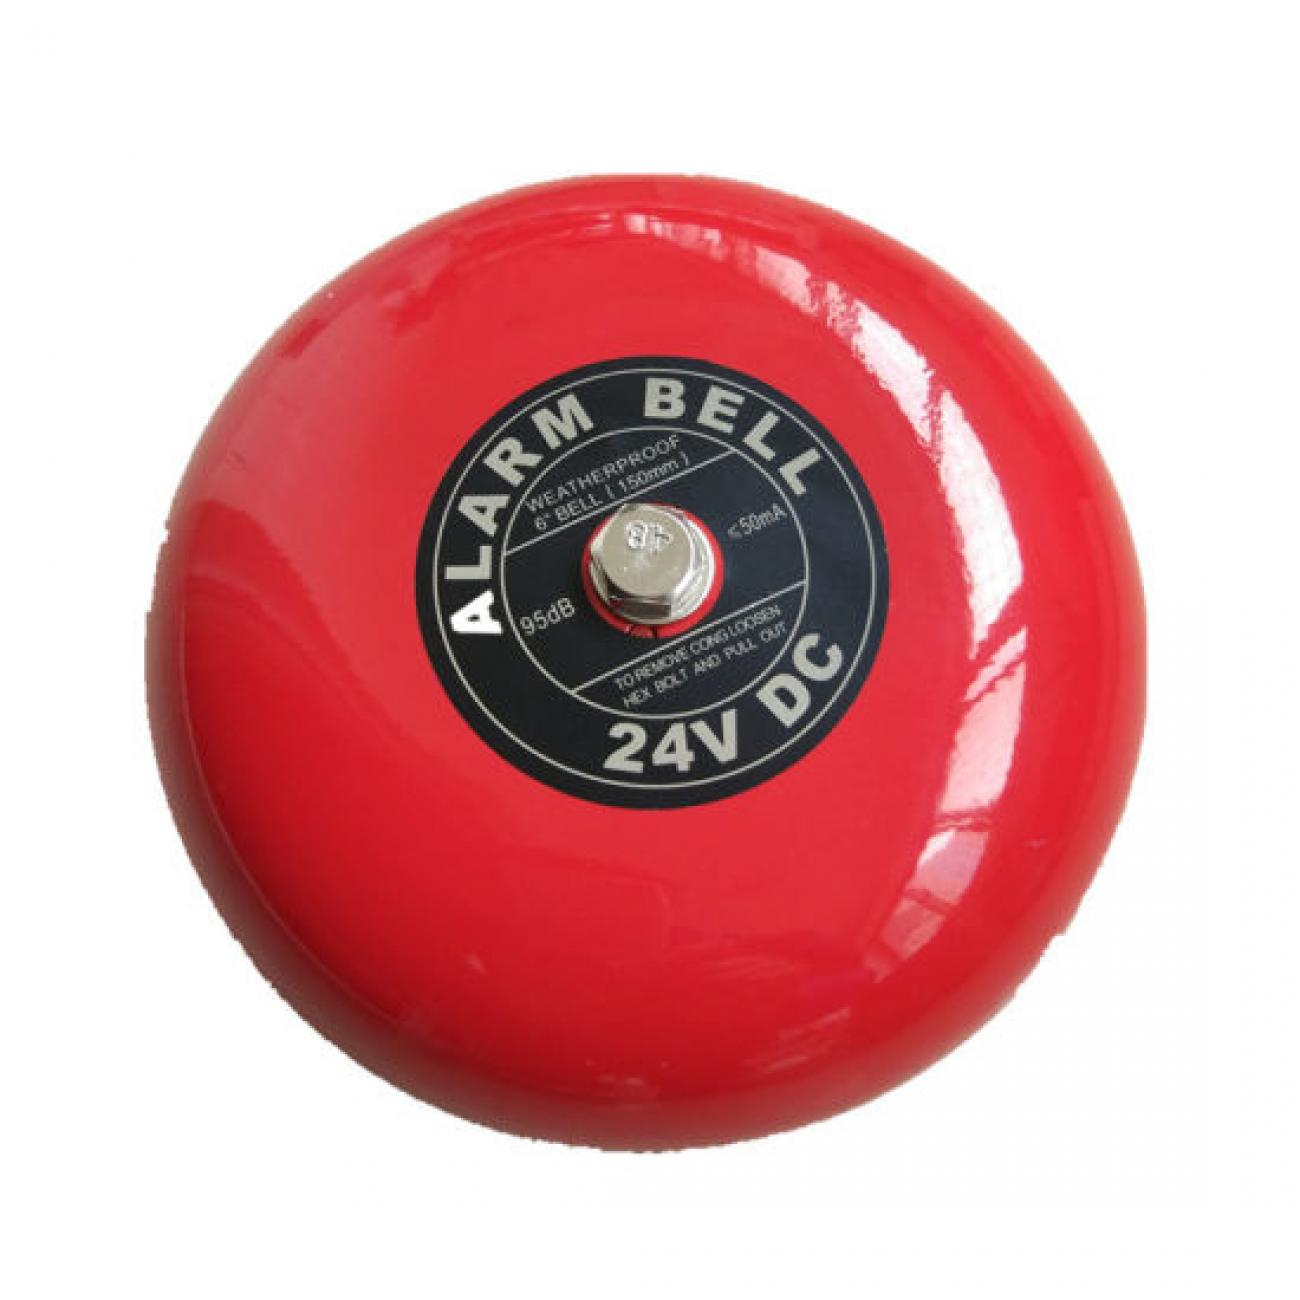 6-Fire-Alarm-Bell-24V-Electric-Bell_(1)